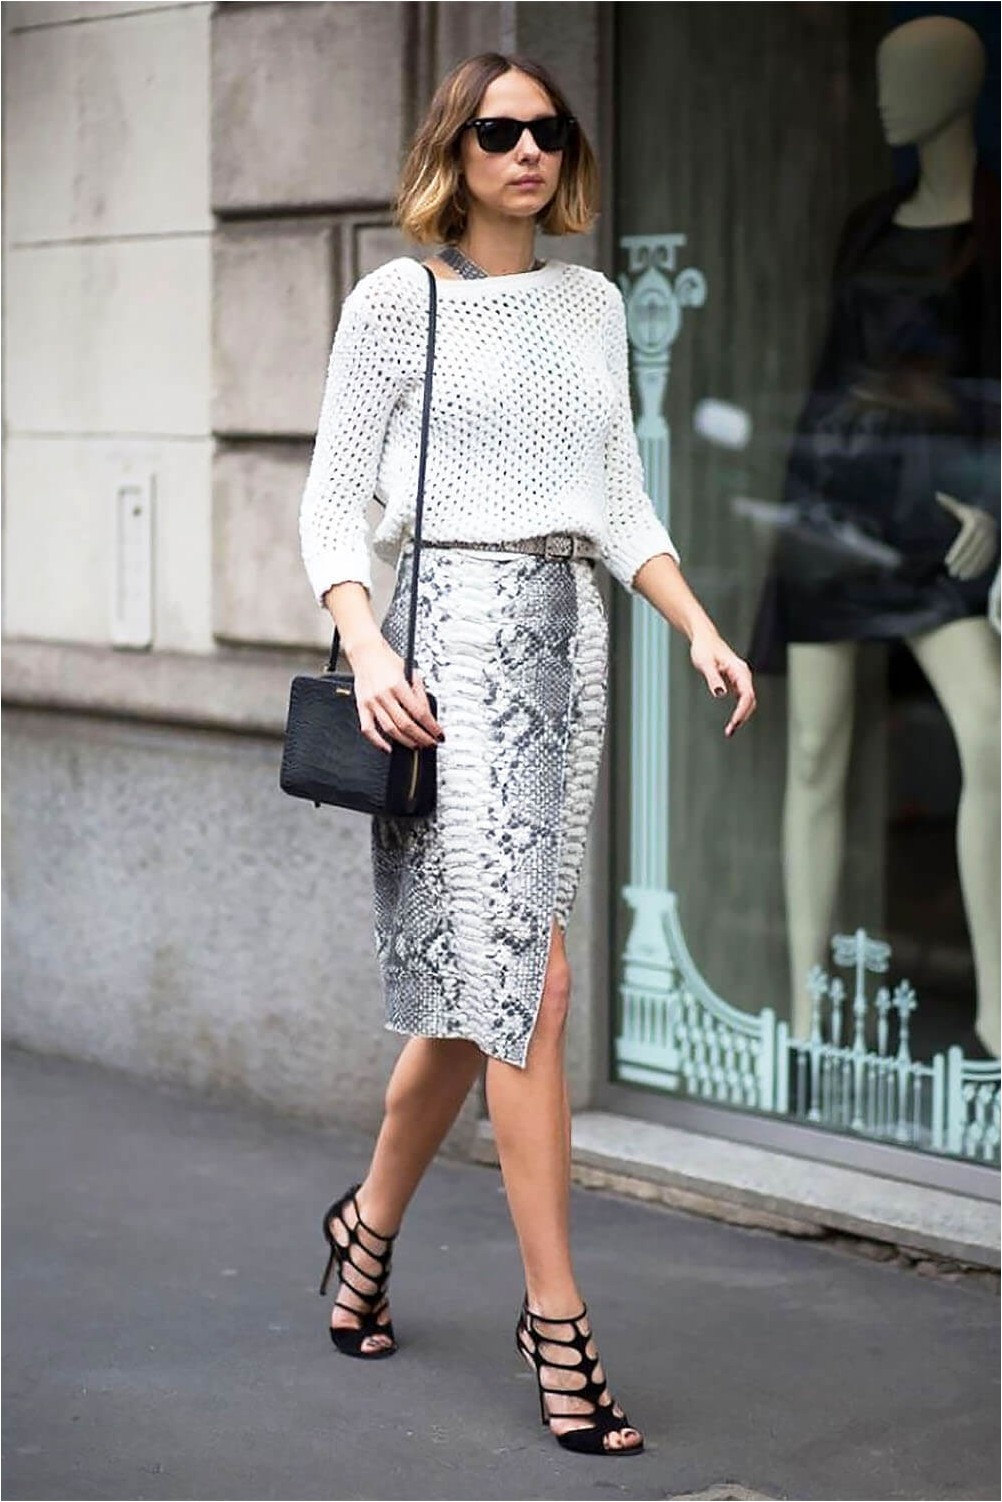 Pencil skirt with sandals